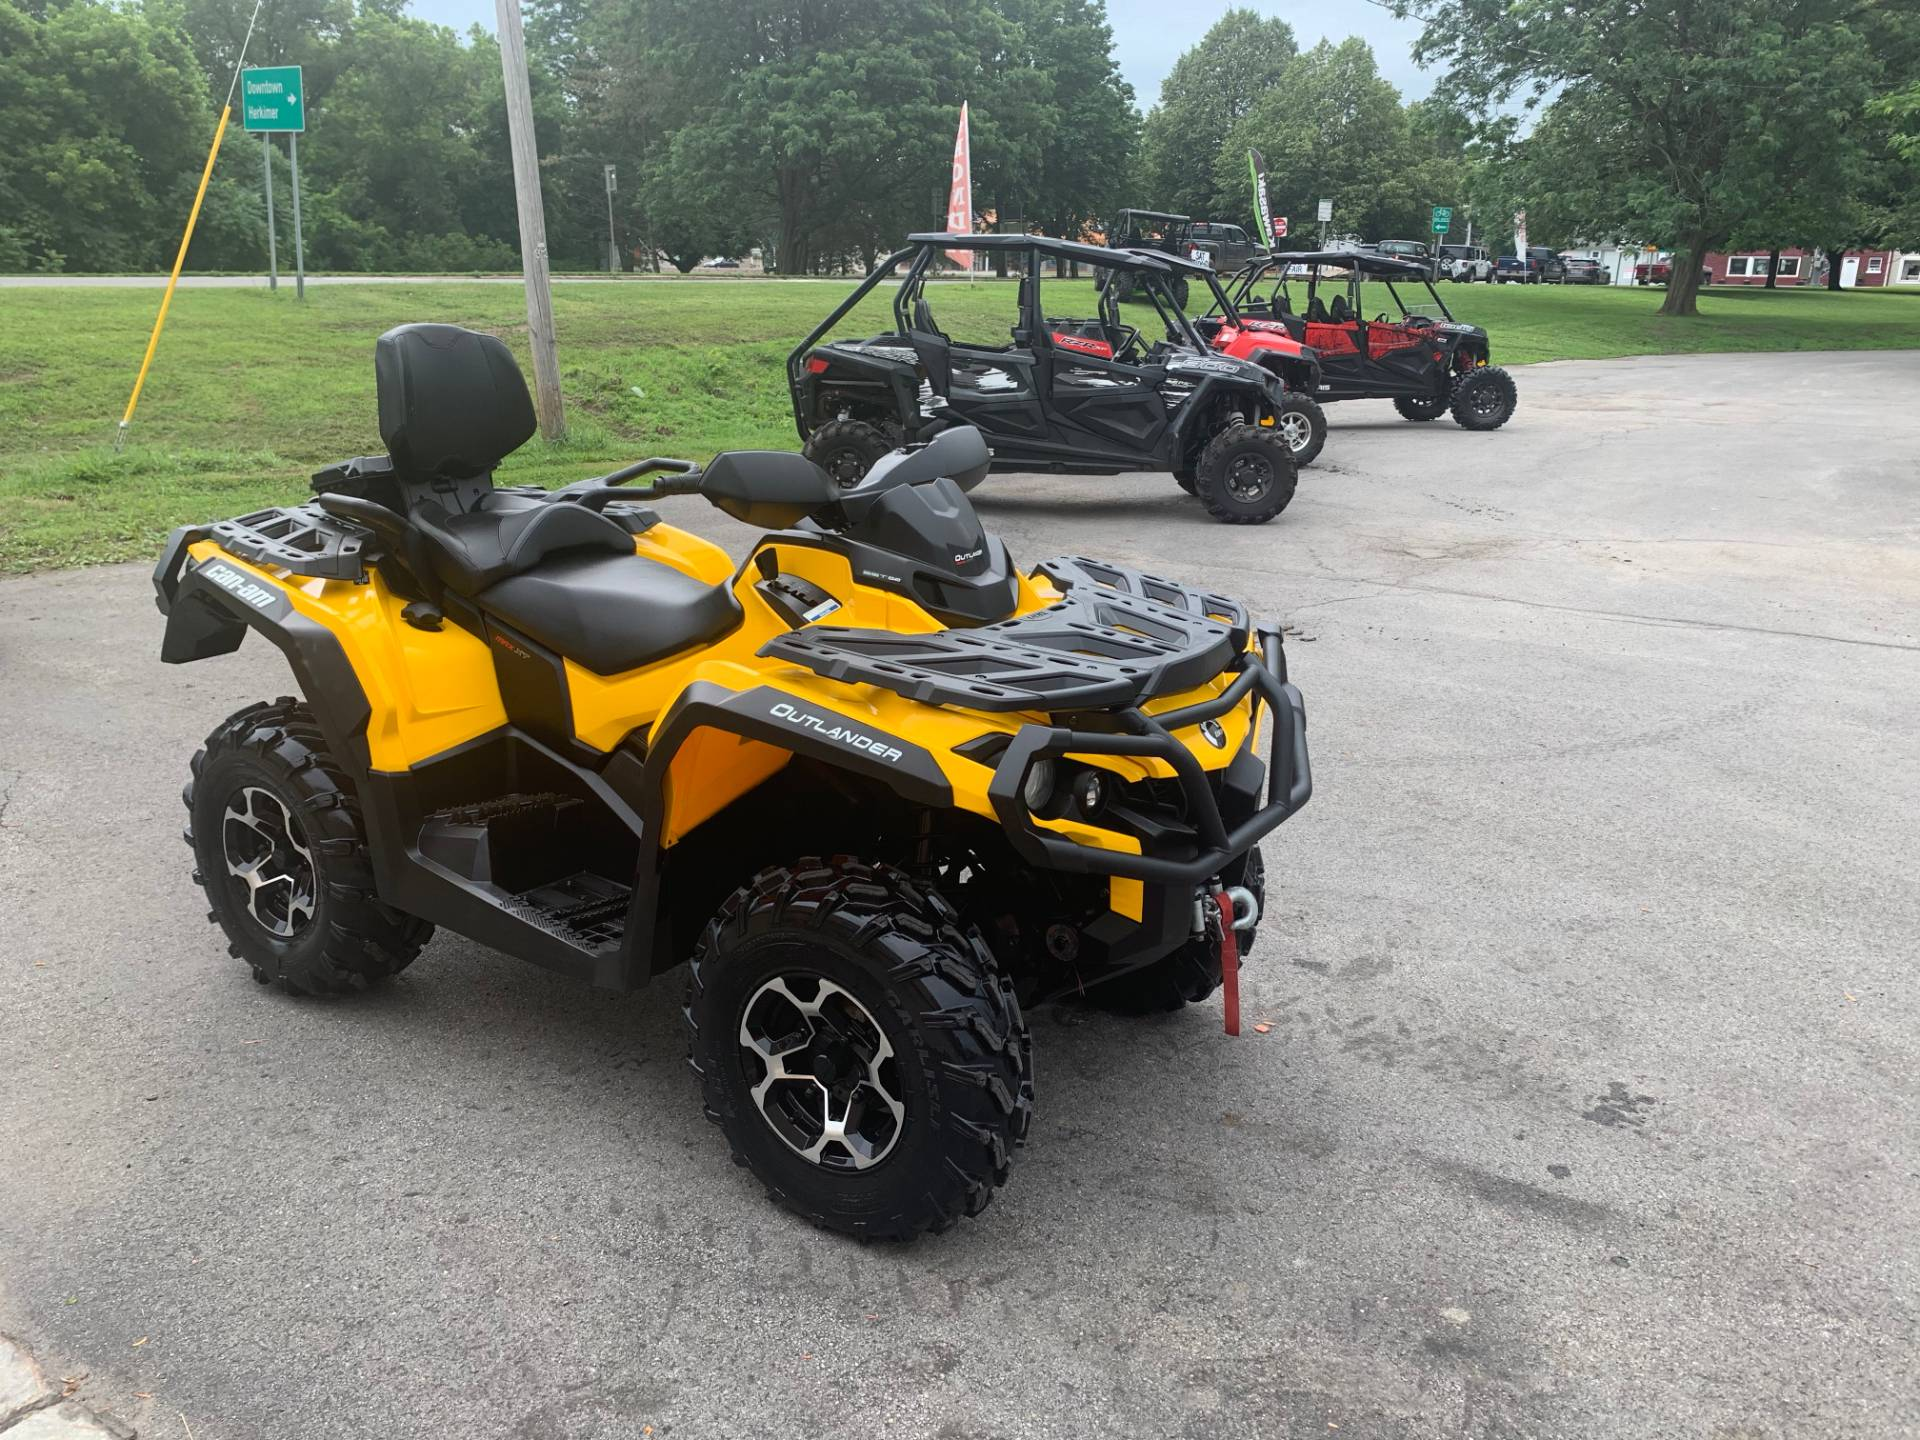 2016 Can-Am Outlander MAX XT 570 in Herkimer, New York - Photo 7